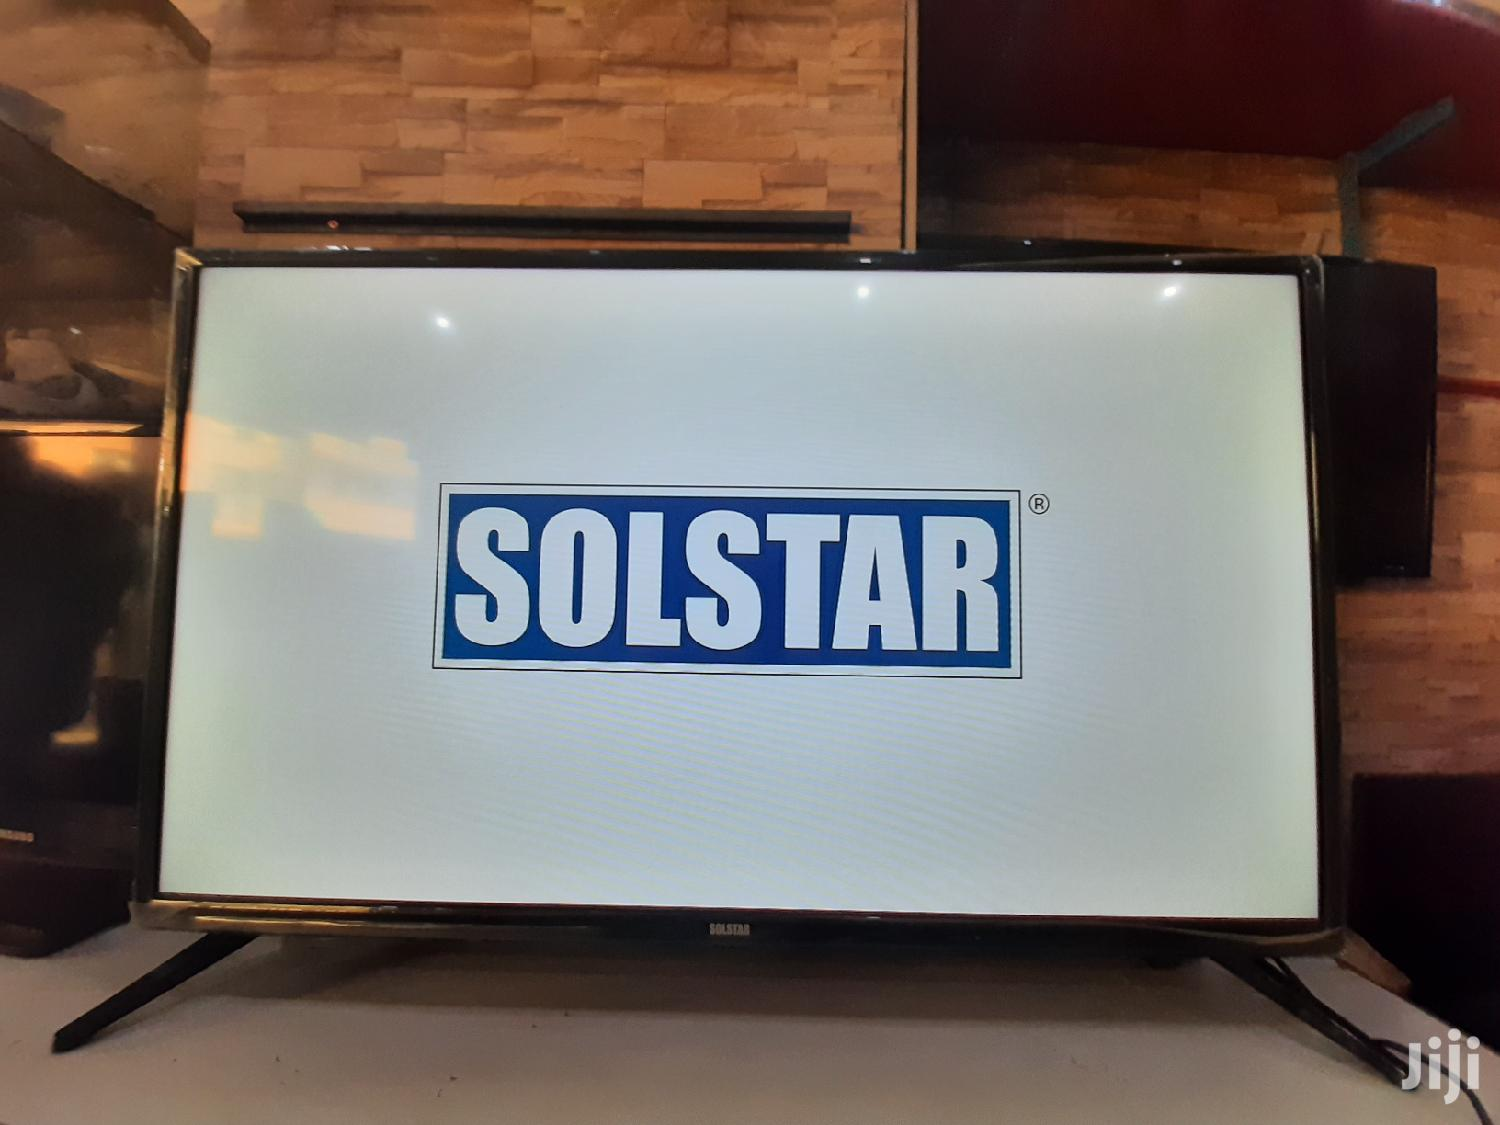 Solstar Digital Satellite Flat Screen TV 32 Inches